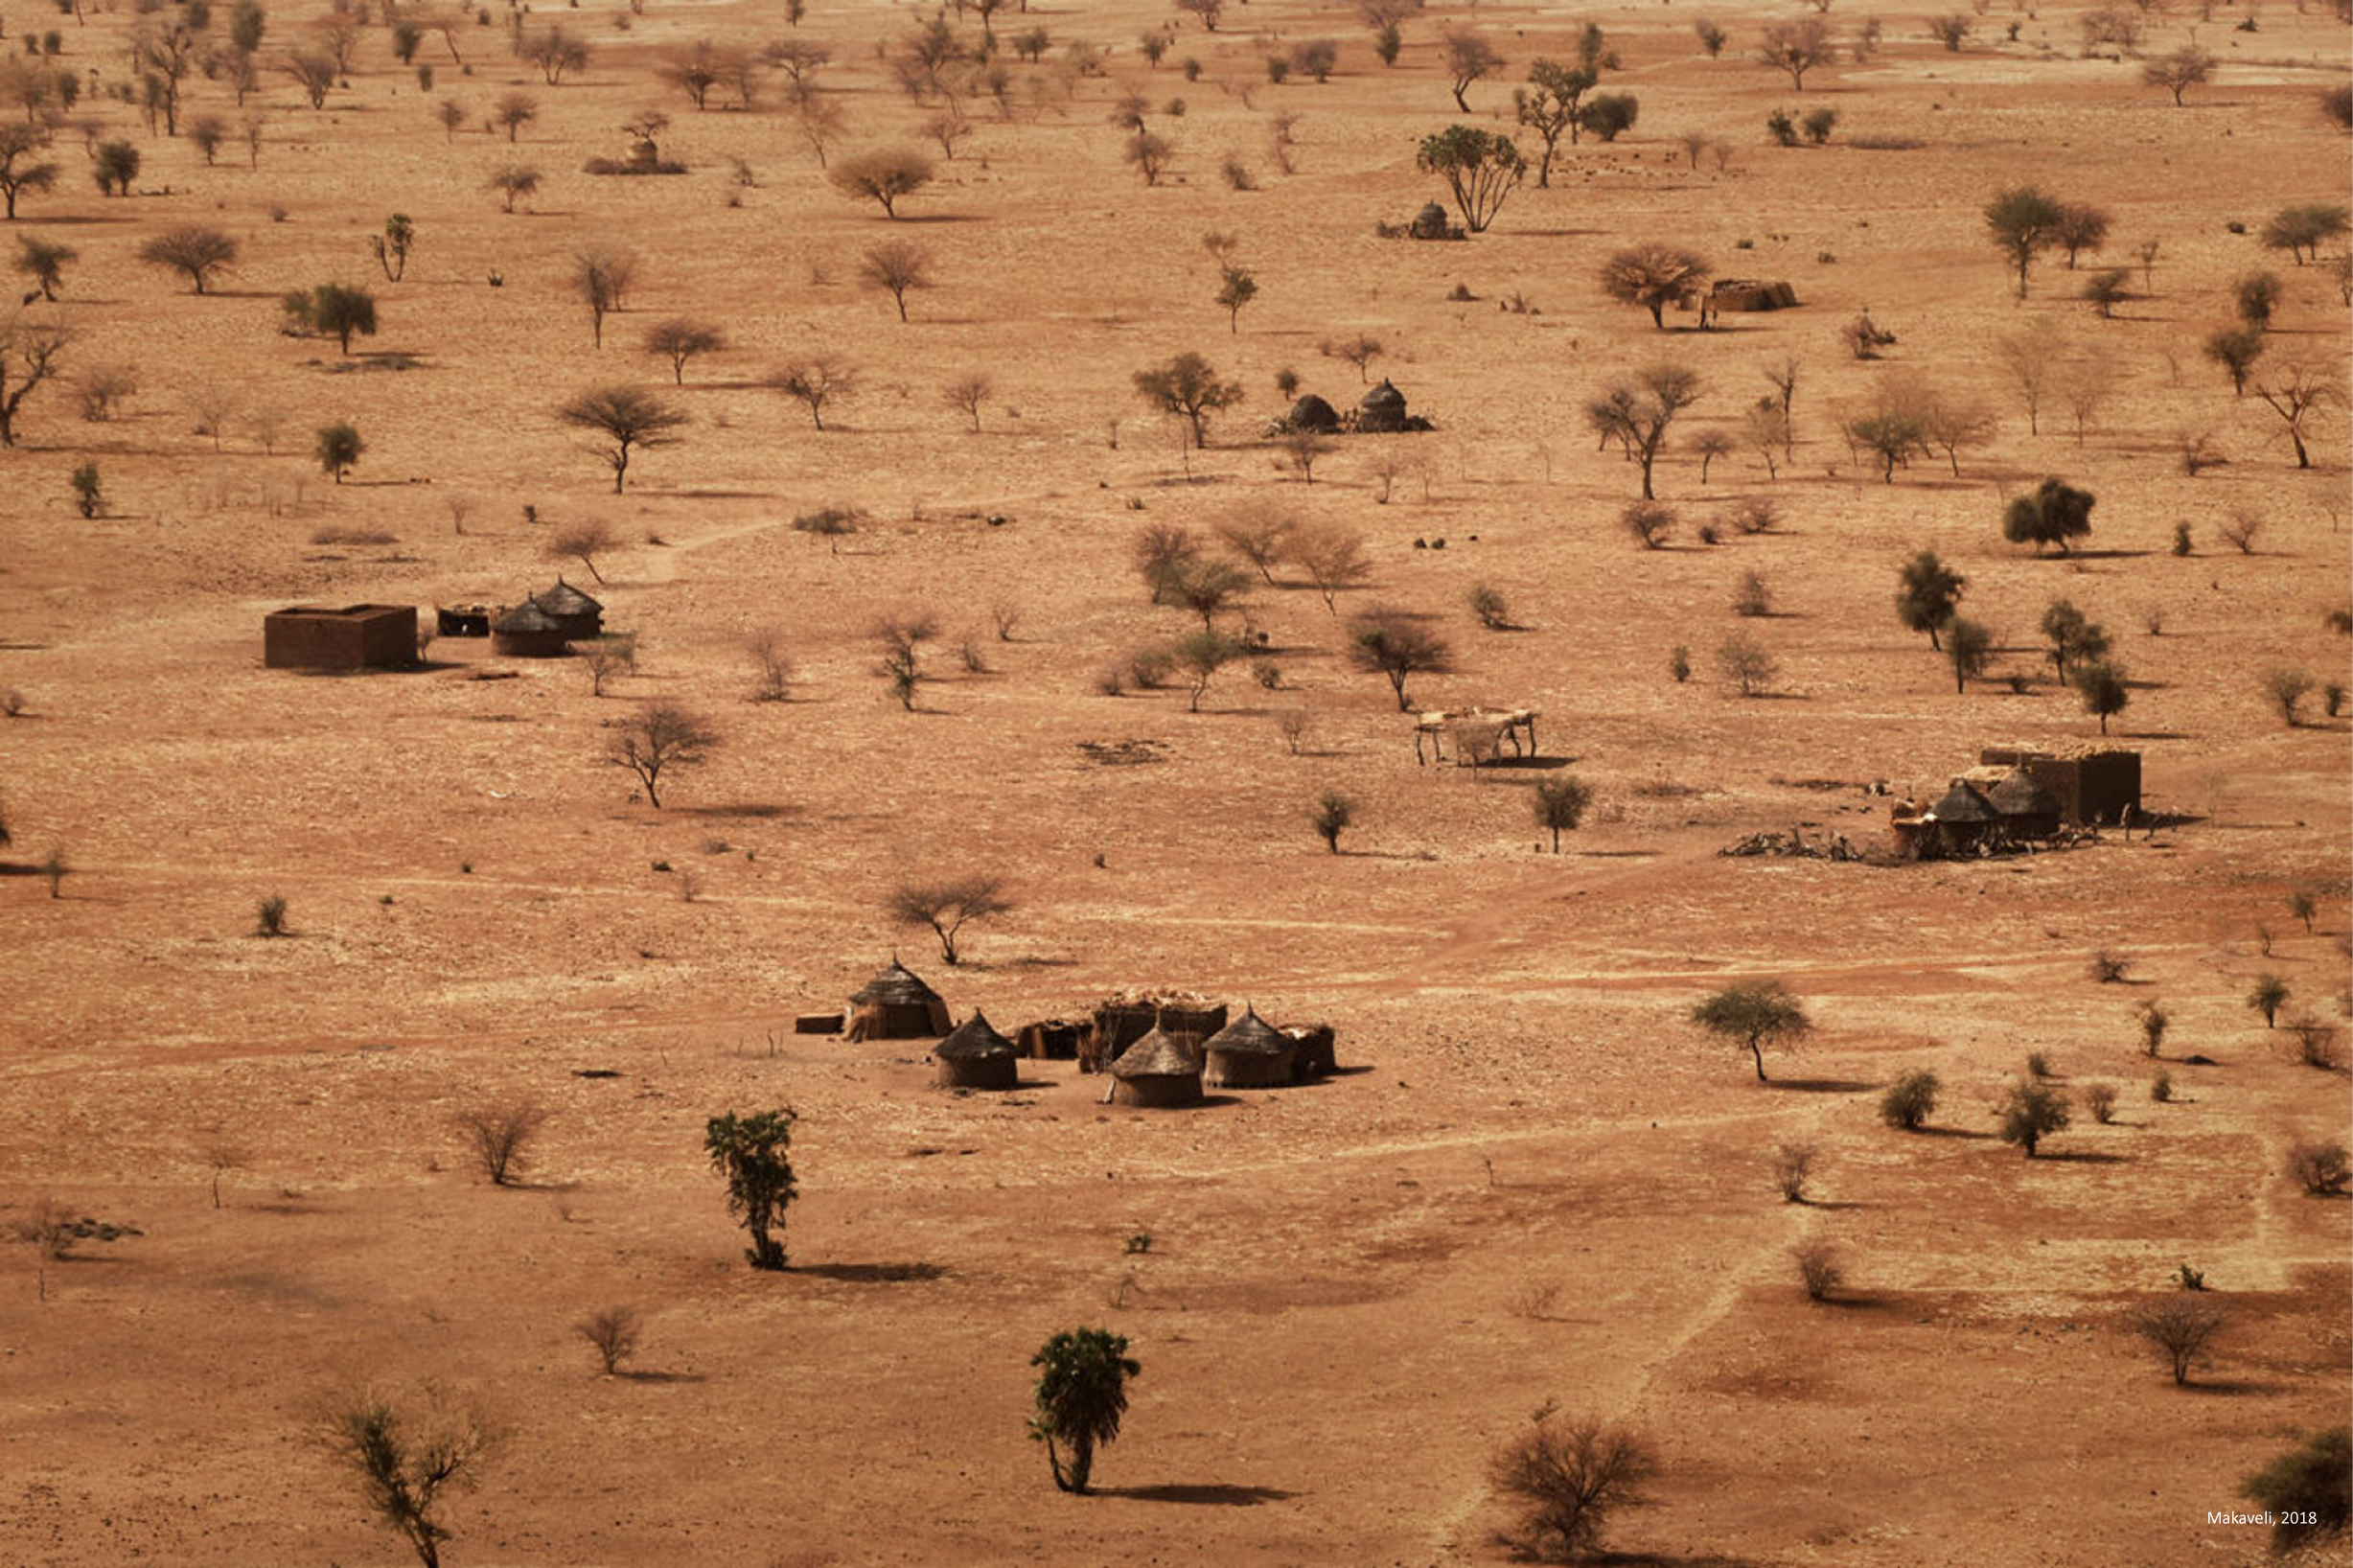 Some of the factors driving « economic » migrations: Droughts are more severe due to global warming, for instance in Gourma Rarhouss (Mali) near the Niger river.